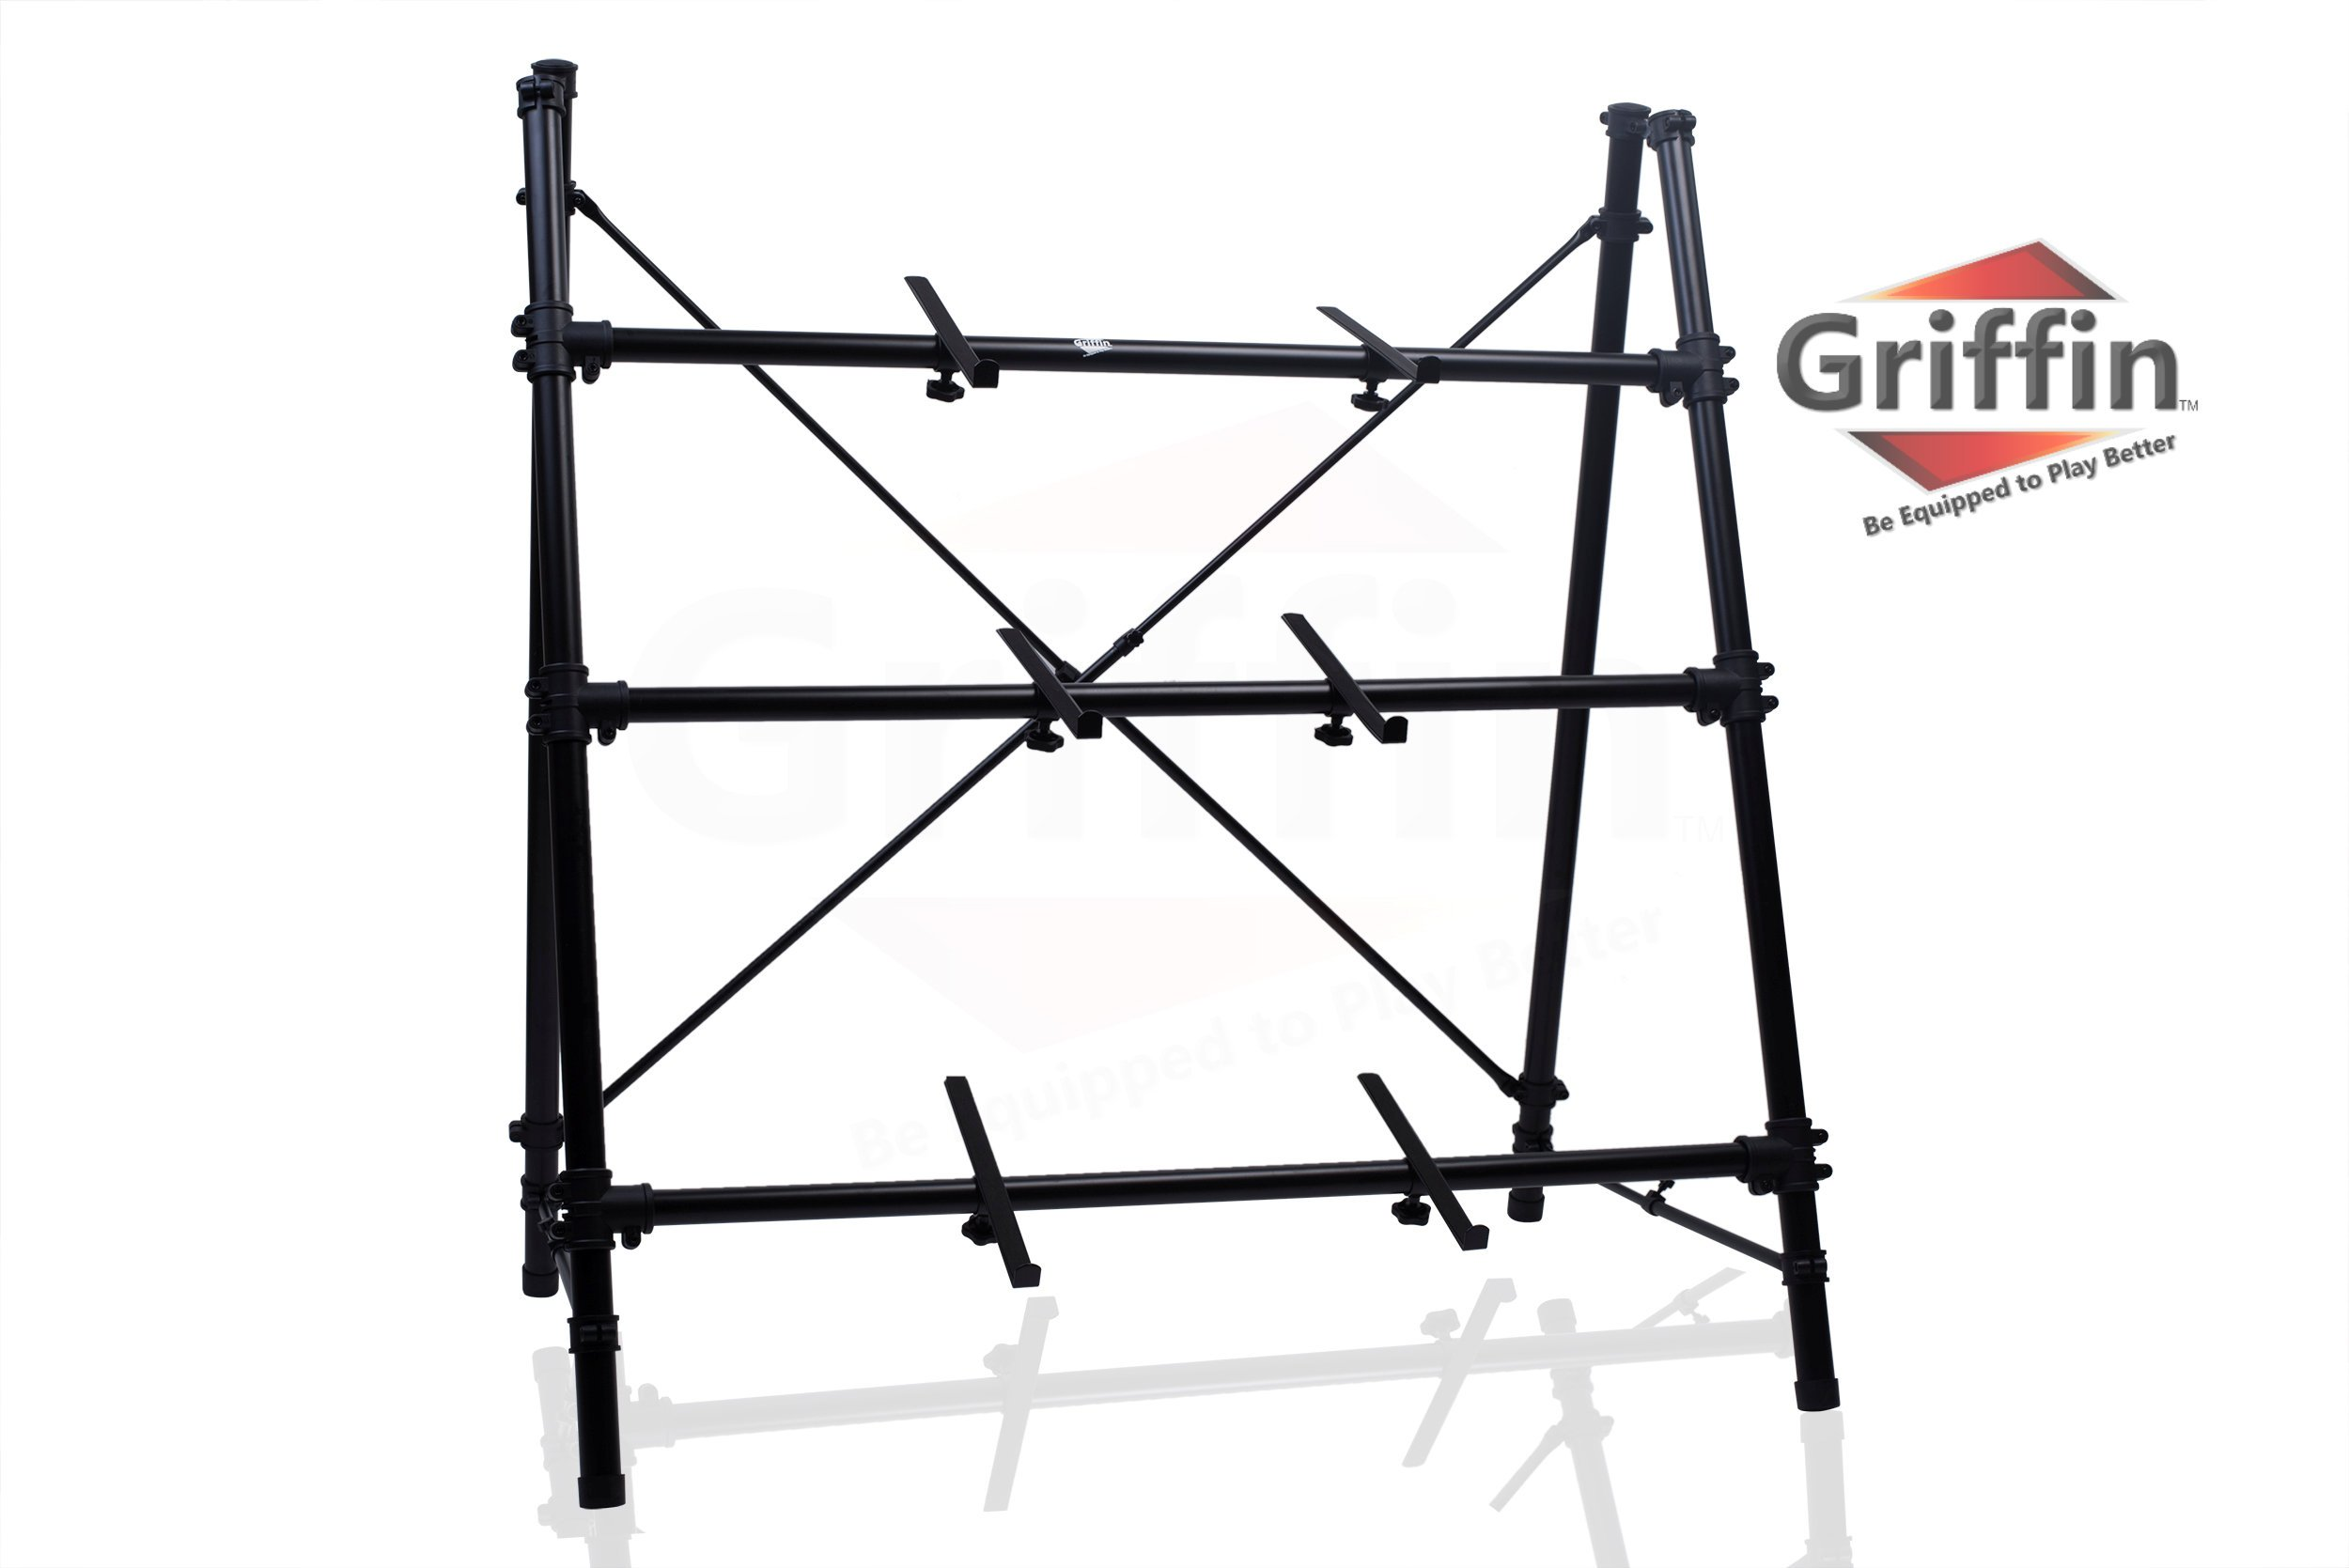 3 Tier Piano Keyboard Stand by Griffin|Triple A-Frame Standing Synthesizer Mixer Holder with Adjustable Height|Pro Audio Stage Performance/Recording Studio Hardware for Music Schools, DJs, Bands